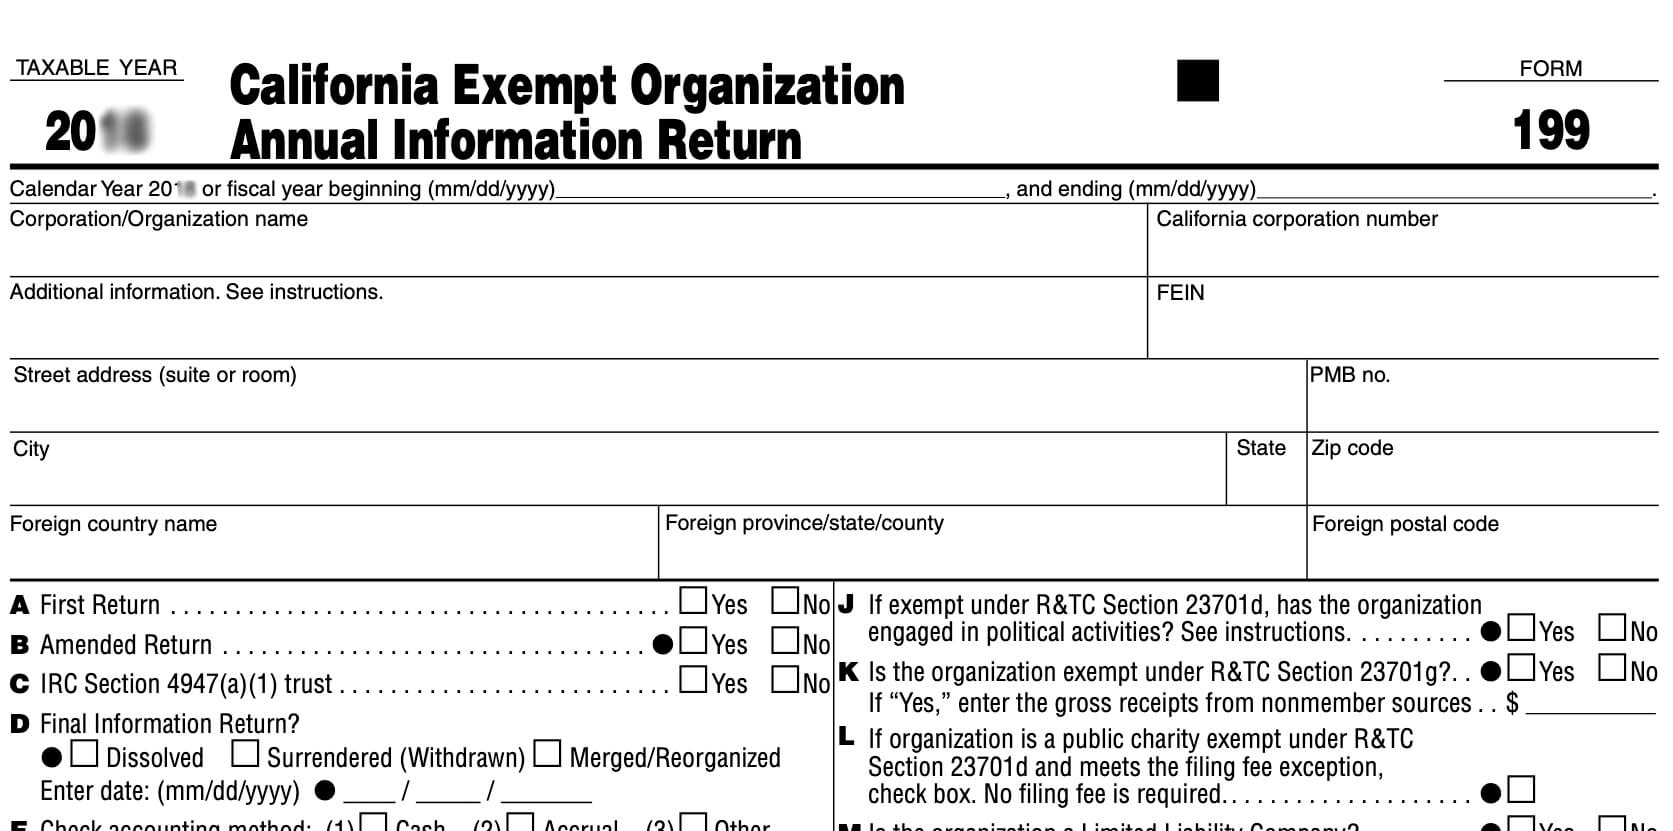 Form 199 is the California exempt organization annual information return